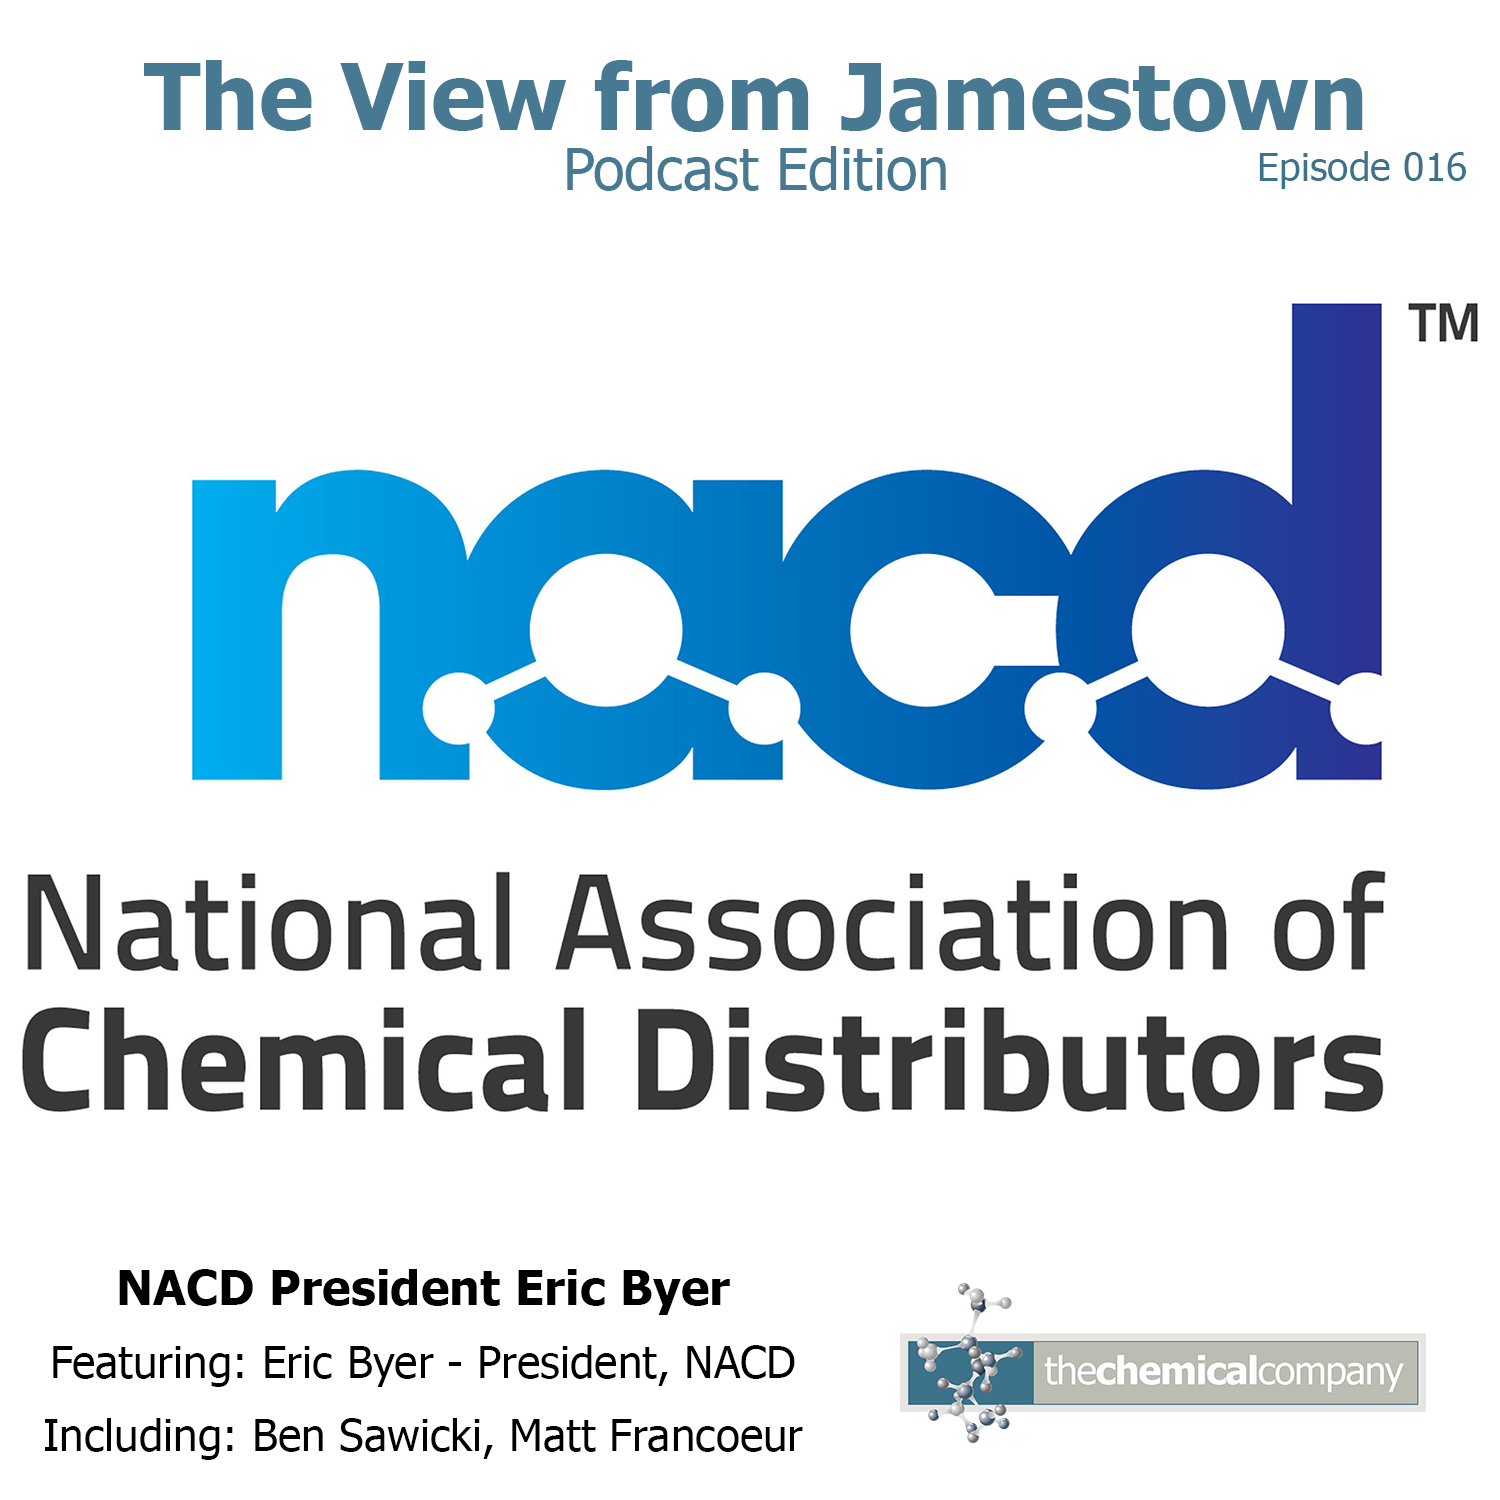 NACD President Eric Byer Interview | The View, Podcast Edition - Episode 016